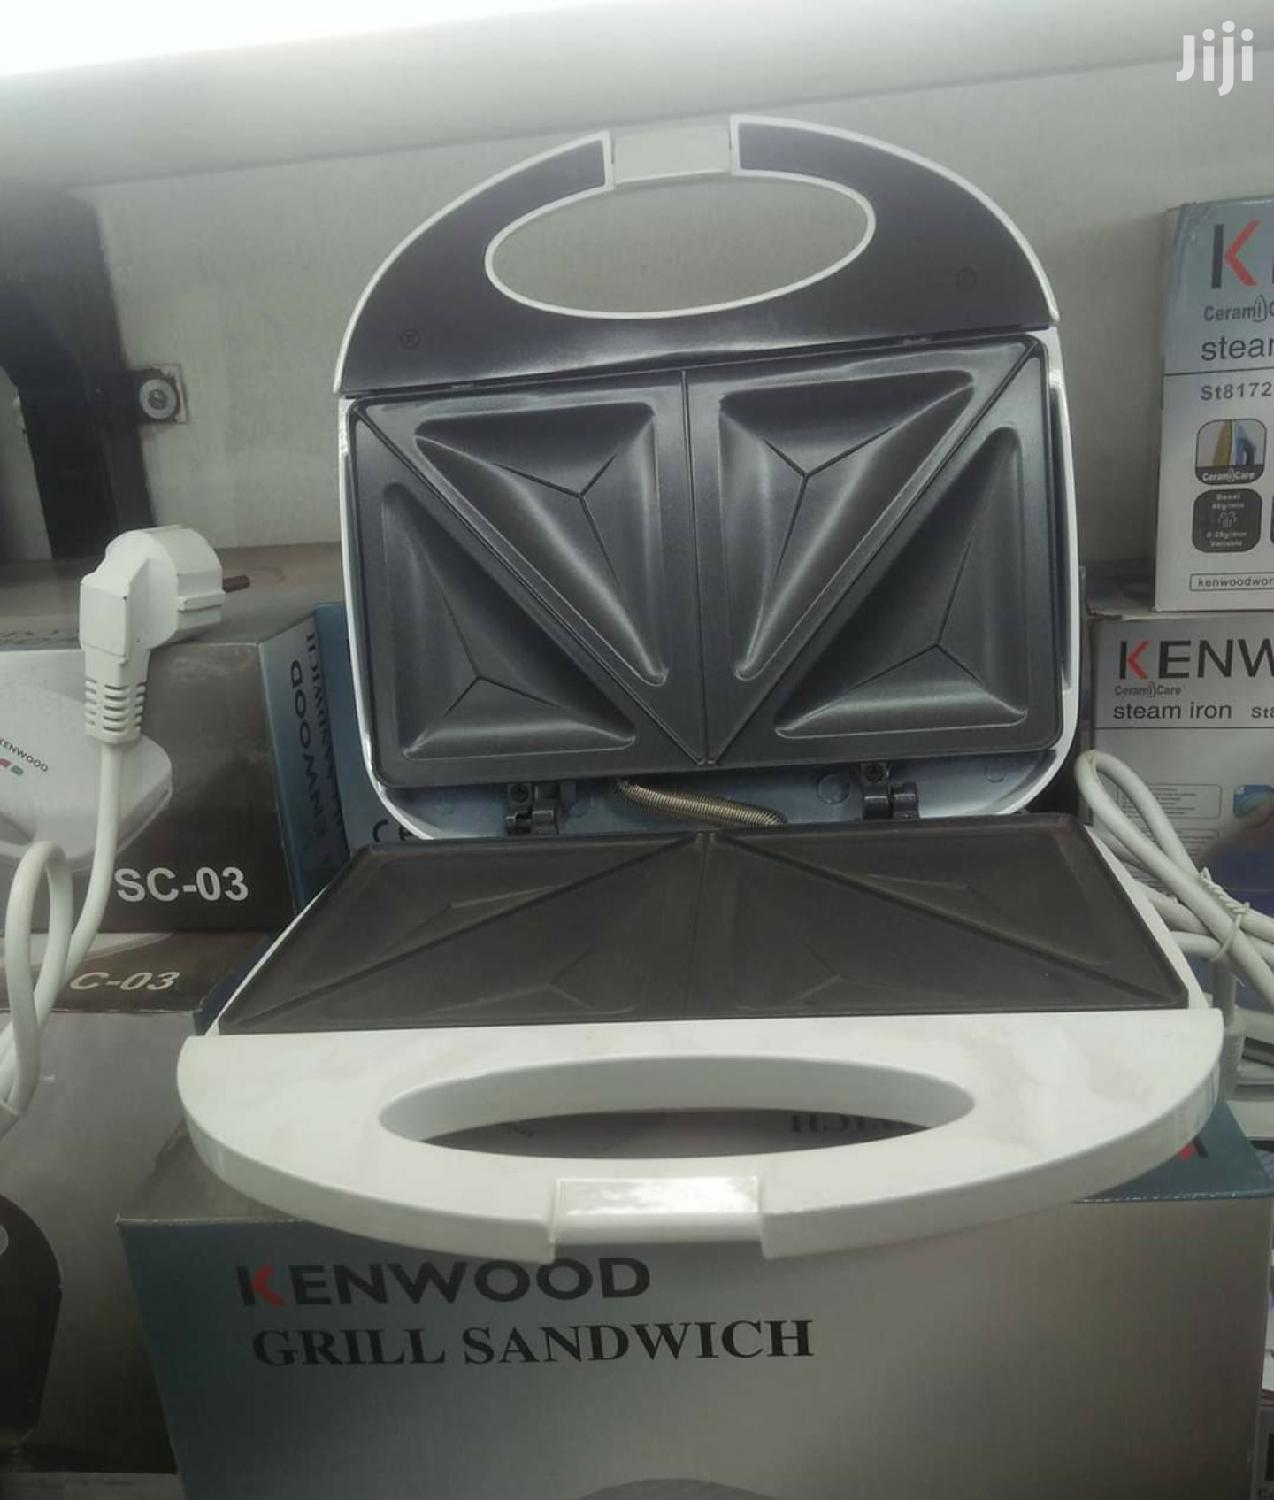 Archive: Kenwood Sandwich Maker